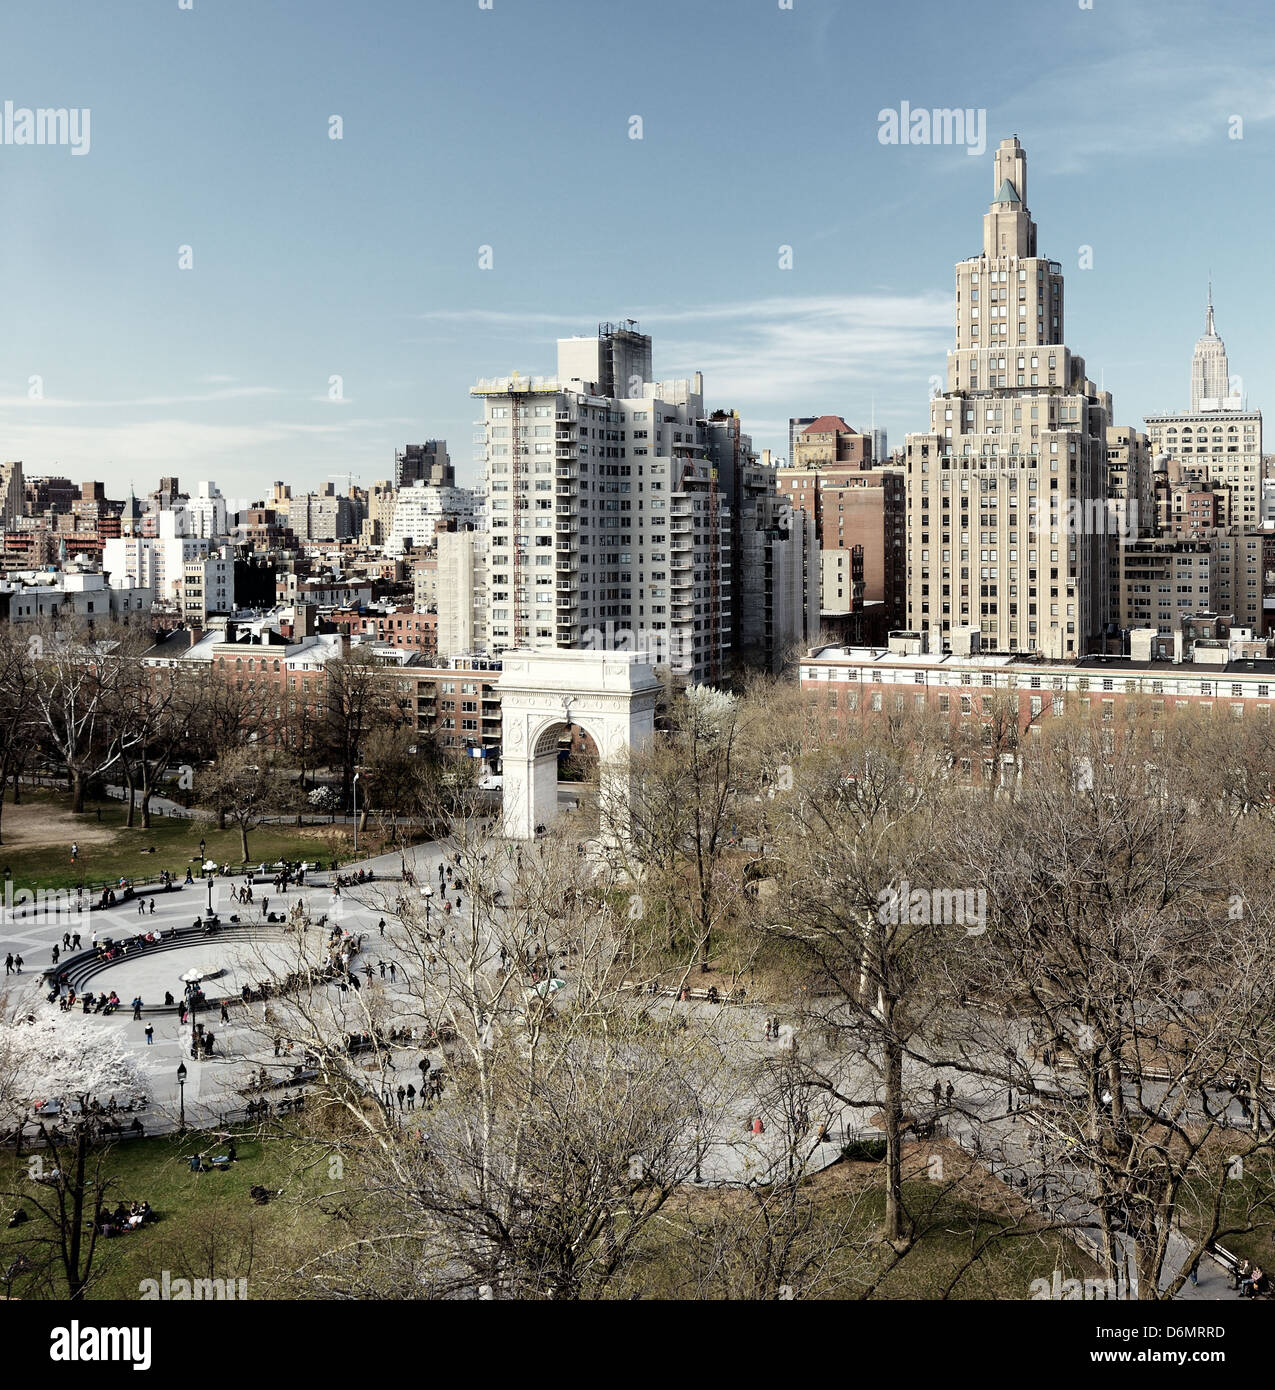 Washington Square Park in New York City Stockbild